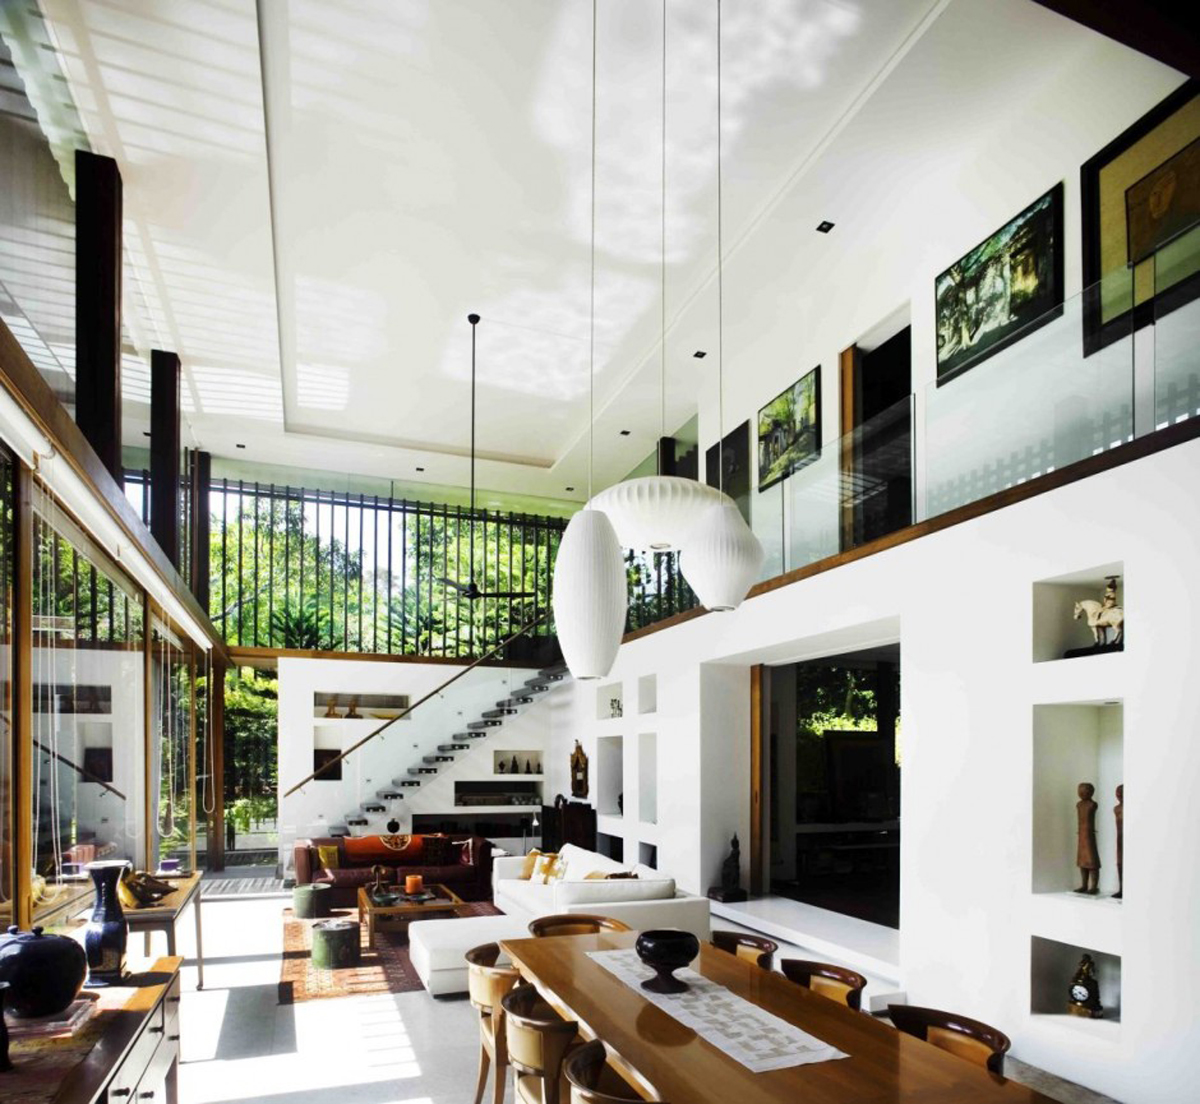 Modern dream house design with wonderful garden views the for Dream house plans with interior photos